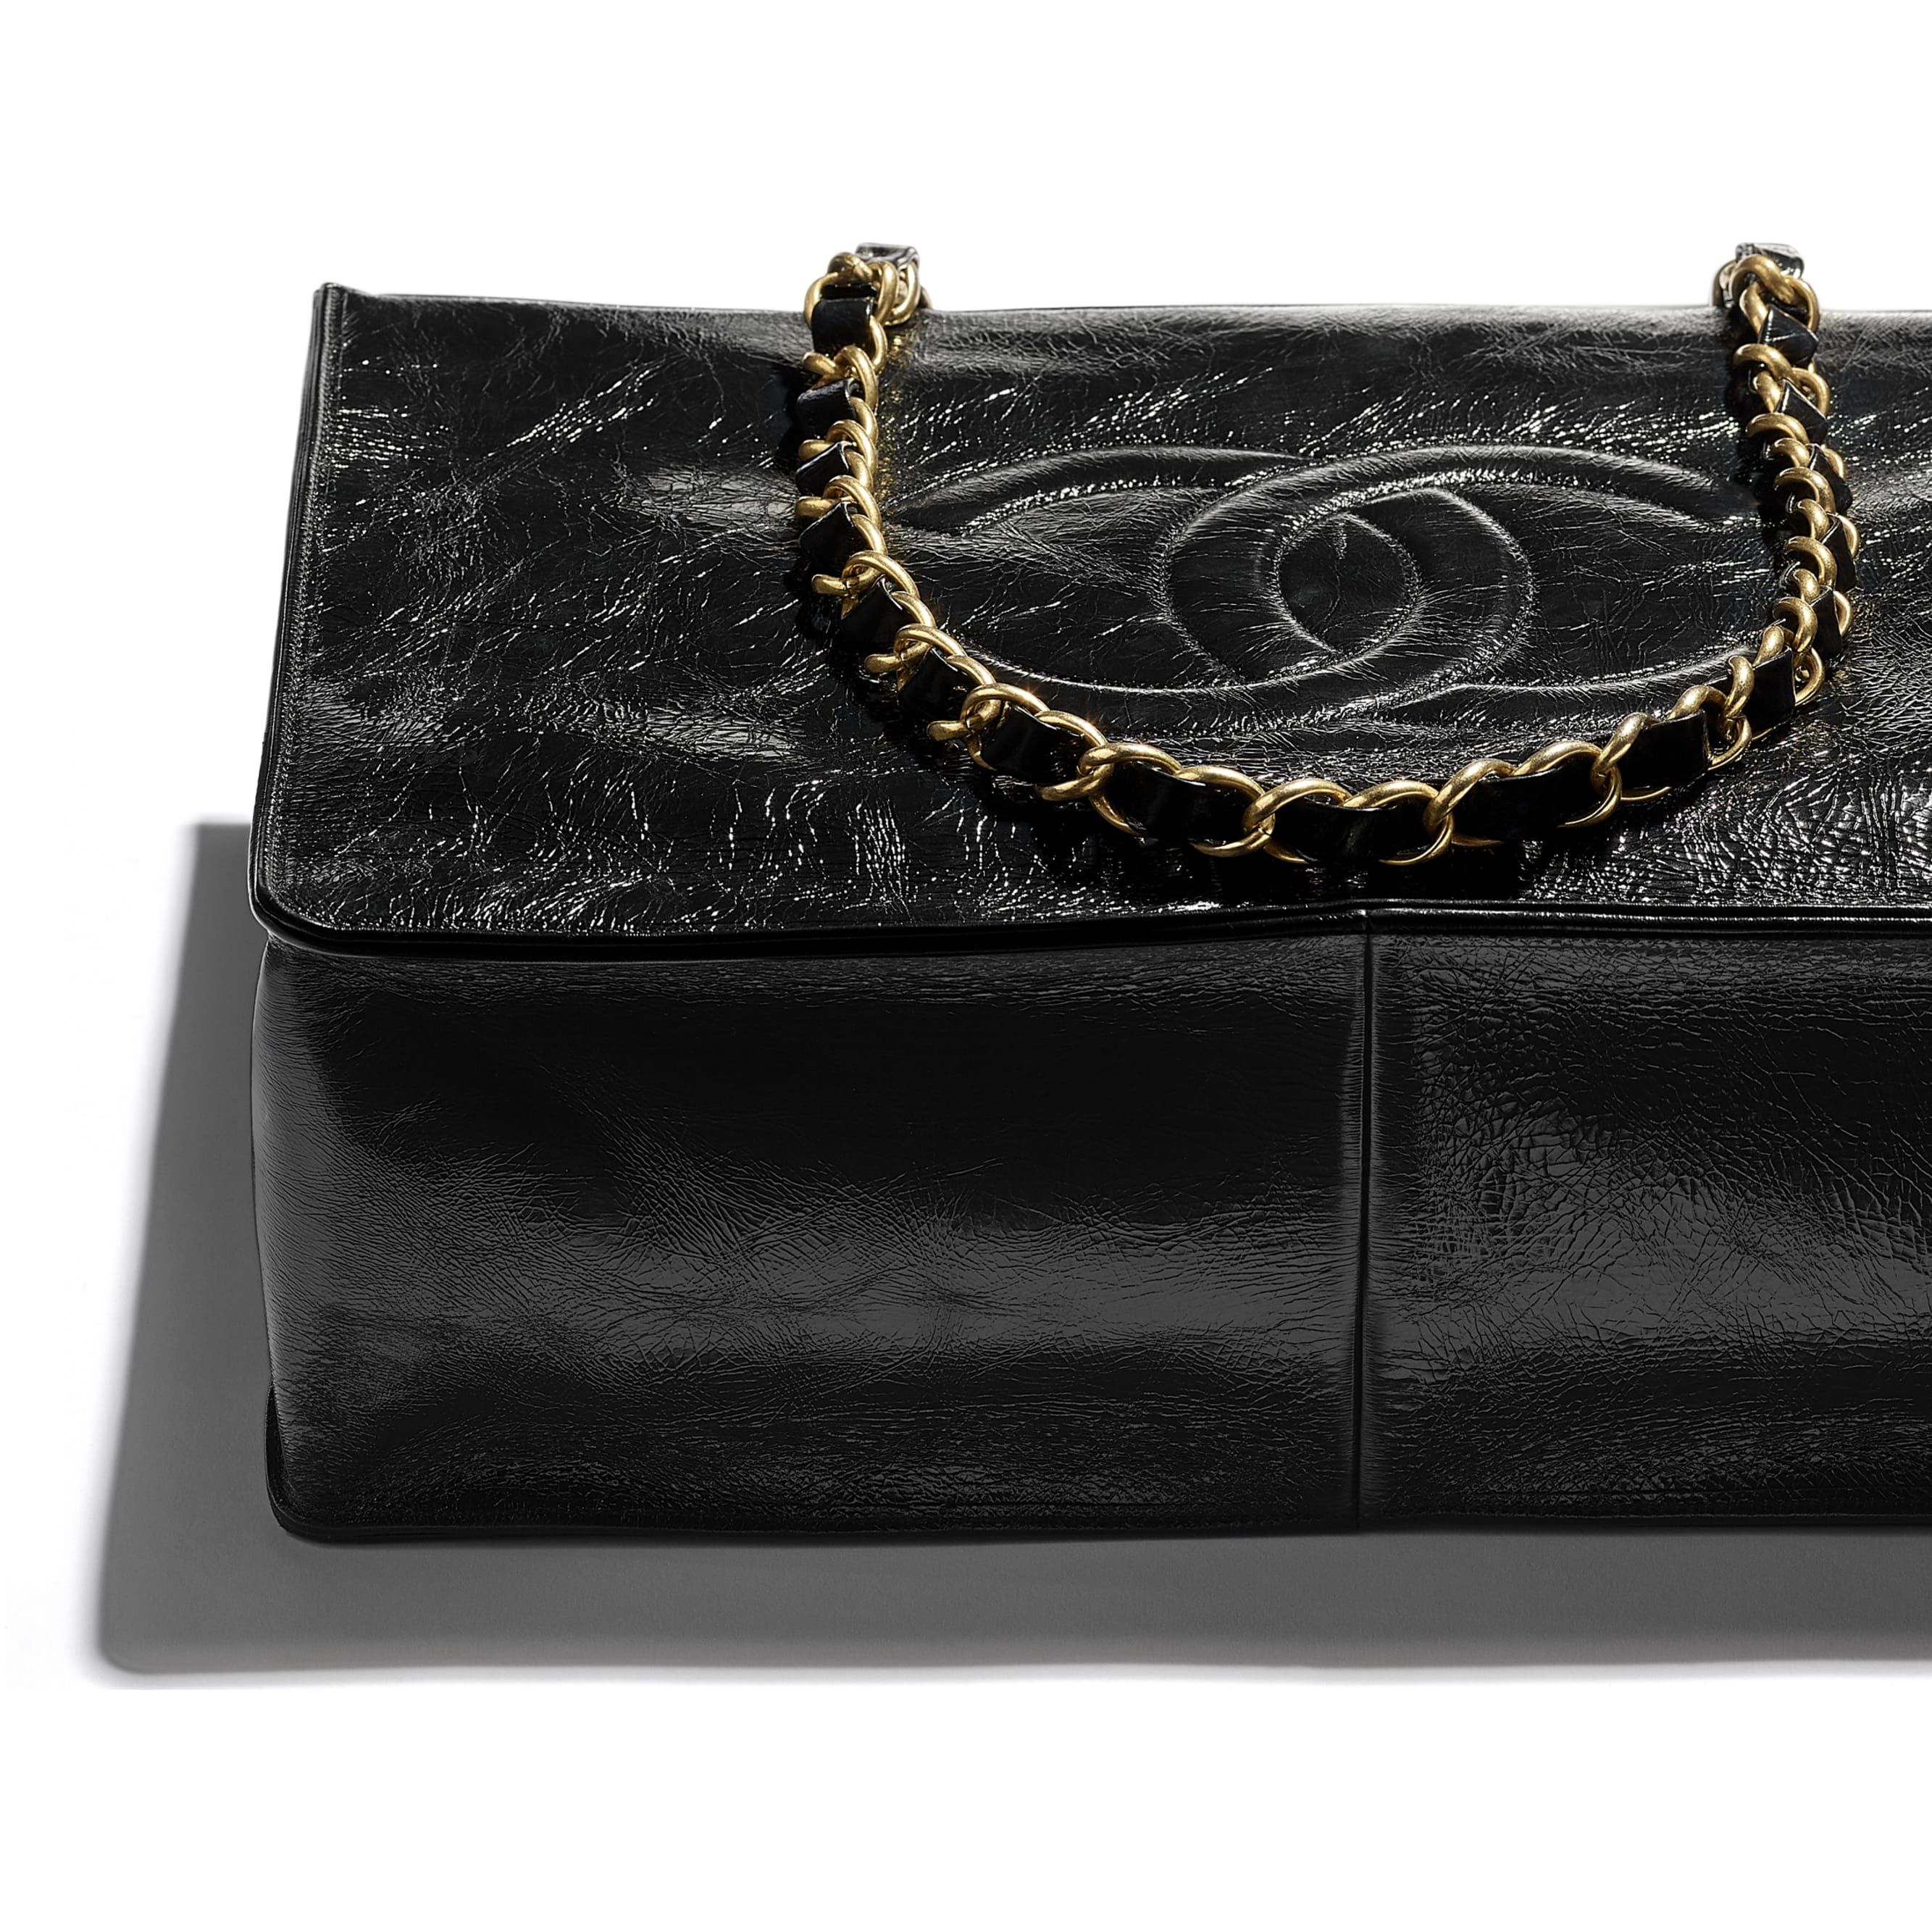 Shopping Bag - Black - Shiny Aged Calfskin & Gold-Tone Metal - CHANEL - Extra view - see standard sized version